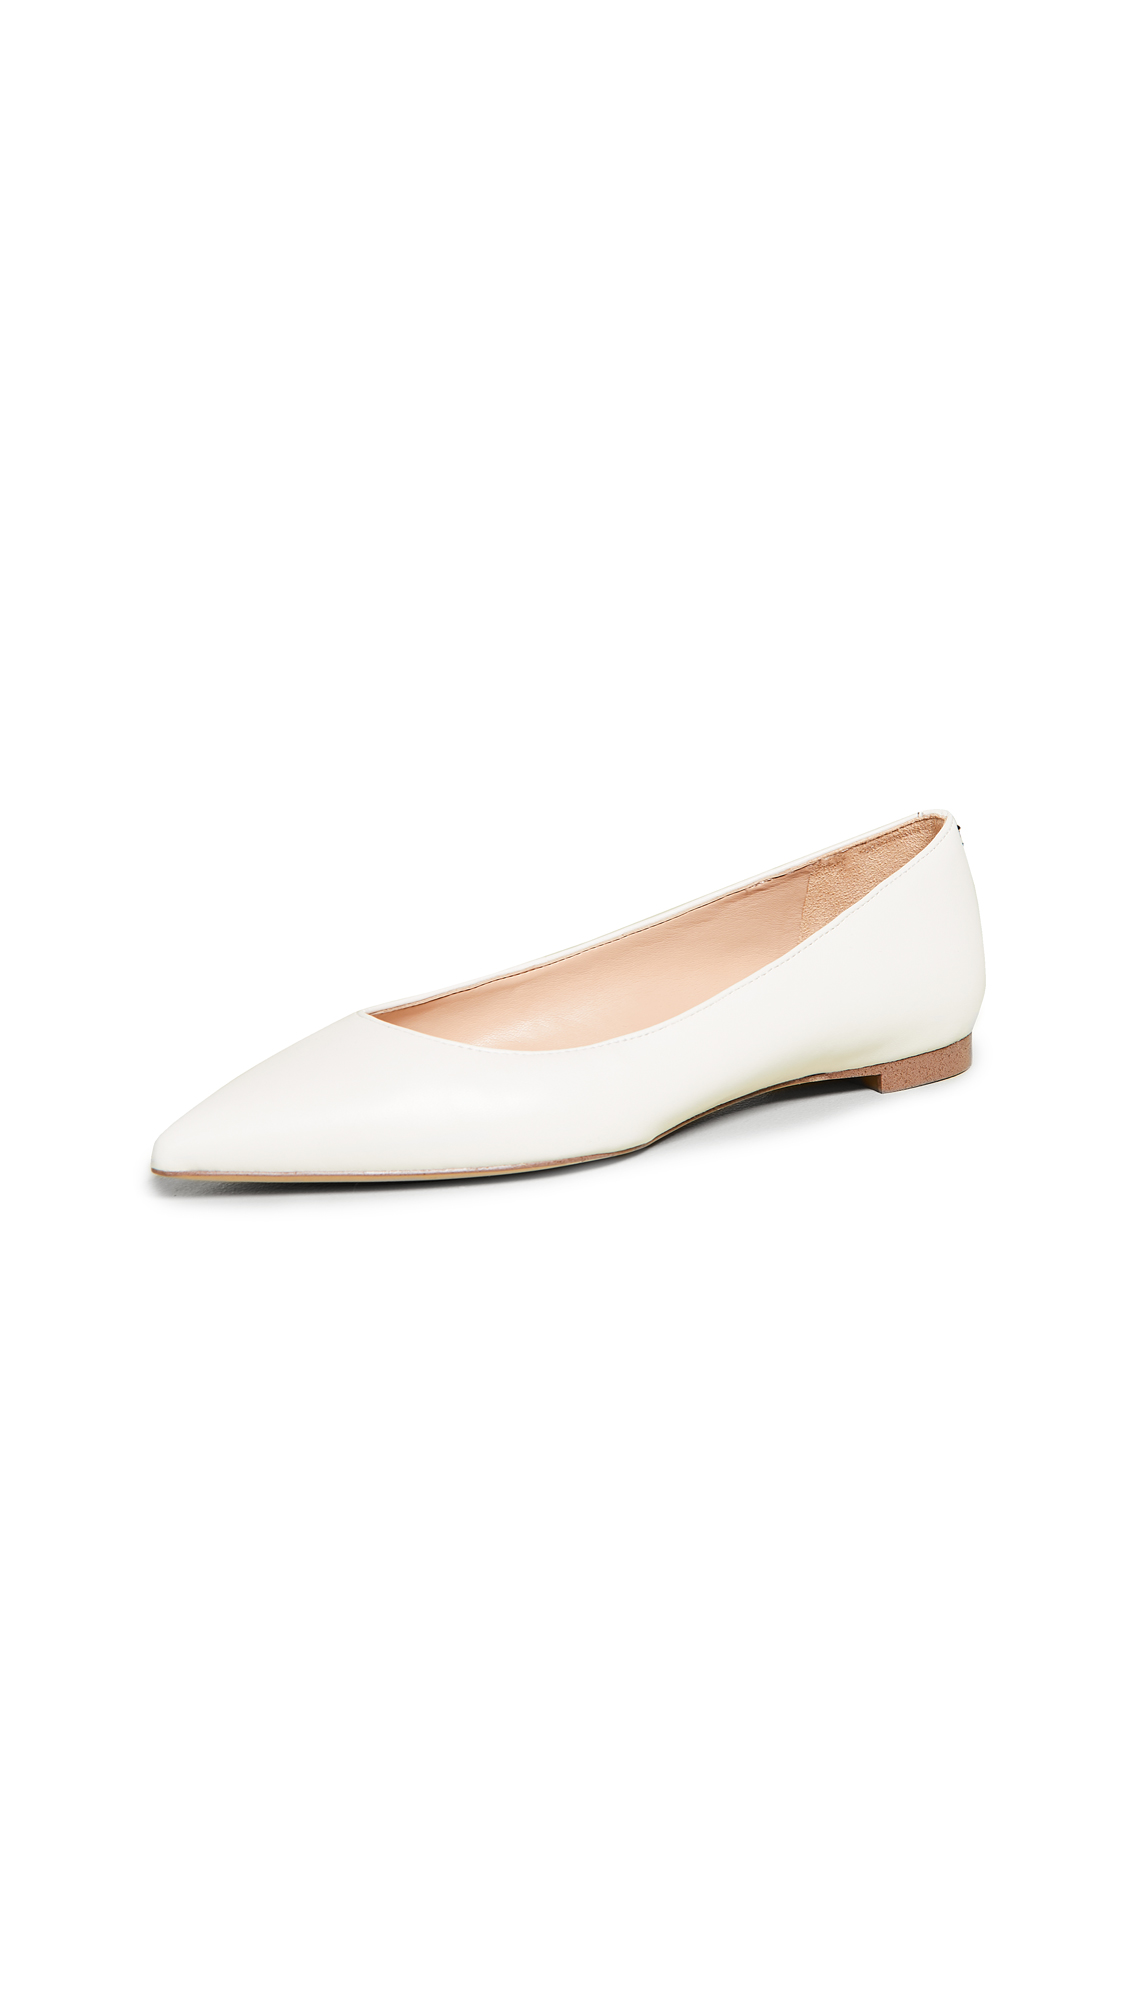 Sam Edelman Sally Flats - Bright White